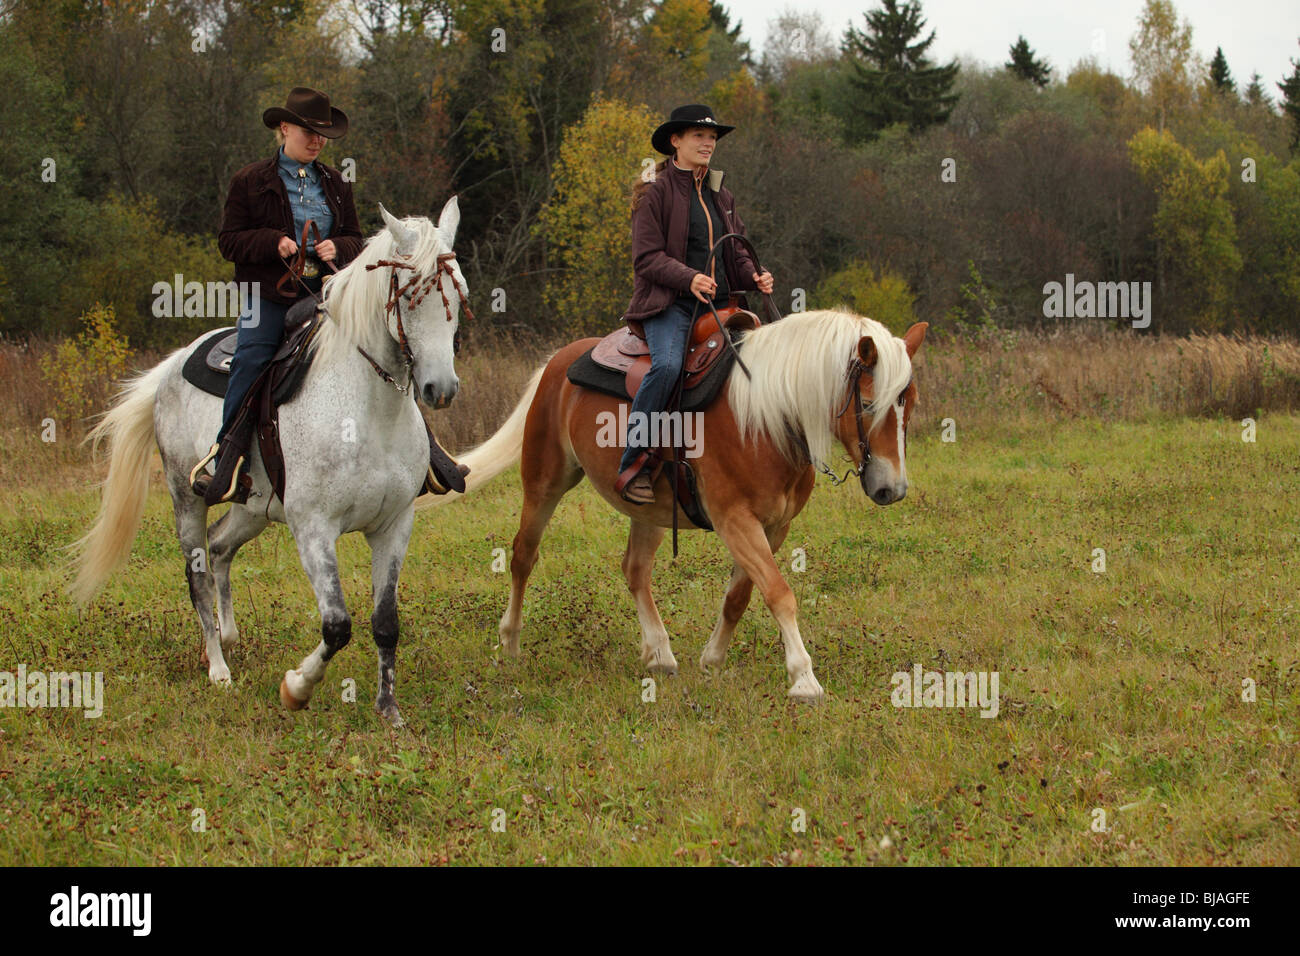 Western Horse Riding Dressage High Resolution Stock Photography And Images Alamy